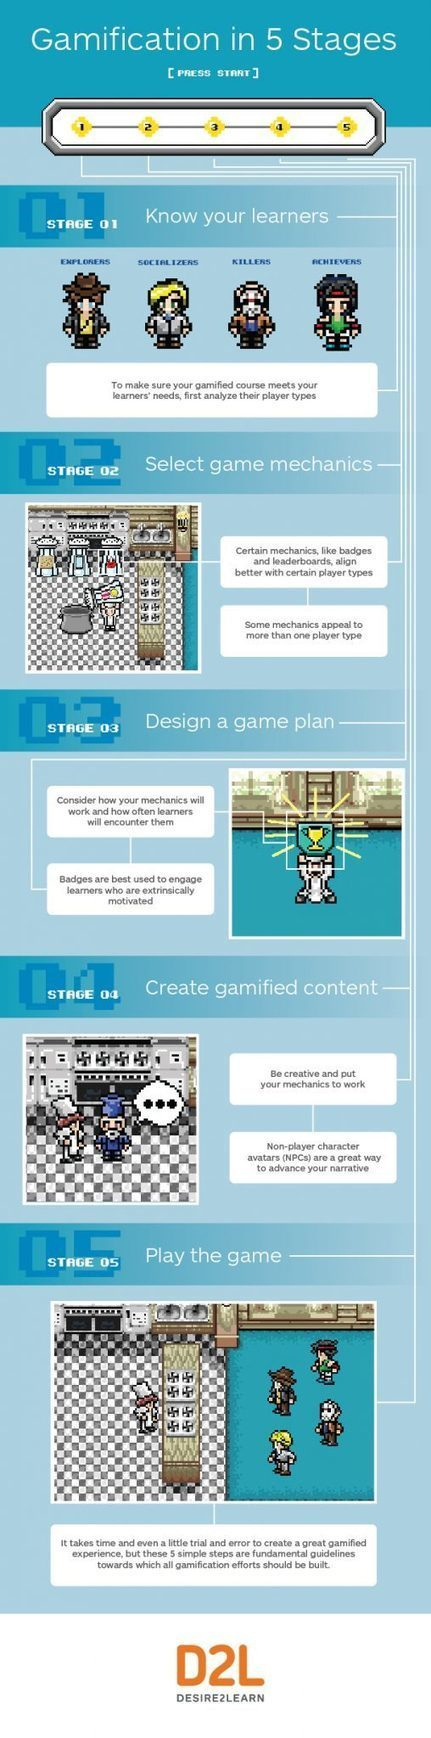 5 Stages to Gamification Infographic | Studying Teaching and Learning | Scoop.it